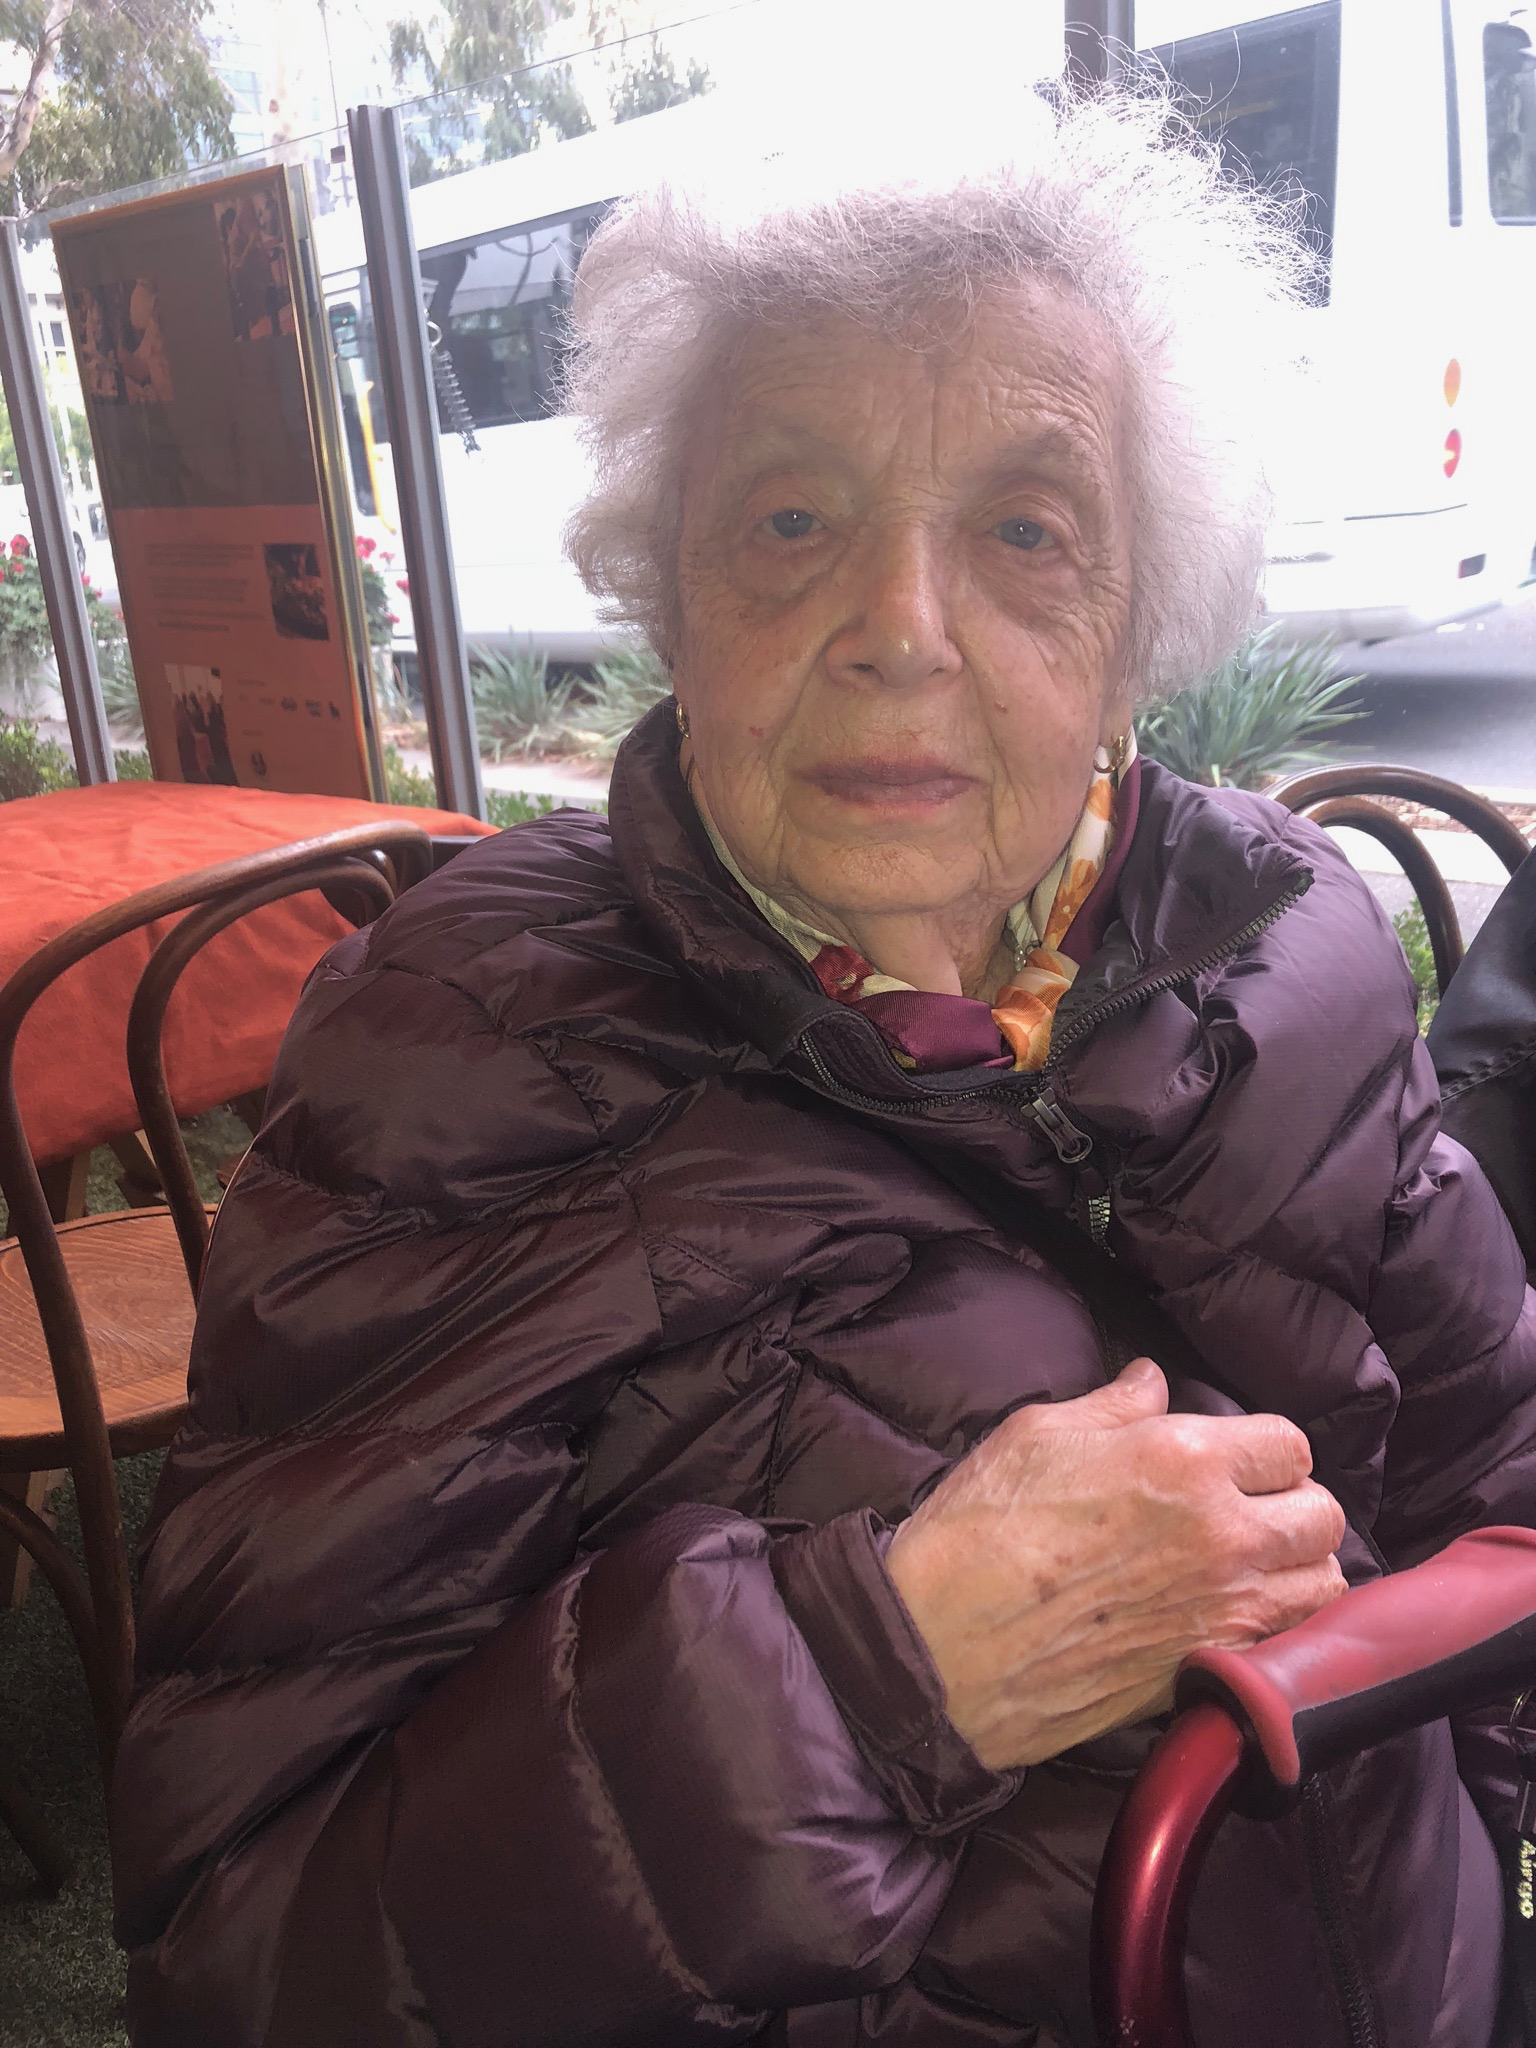 - Meet Lyuba: She's 88 years young, born in Saint Petersburg and lives in the housing flats in Windsor